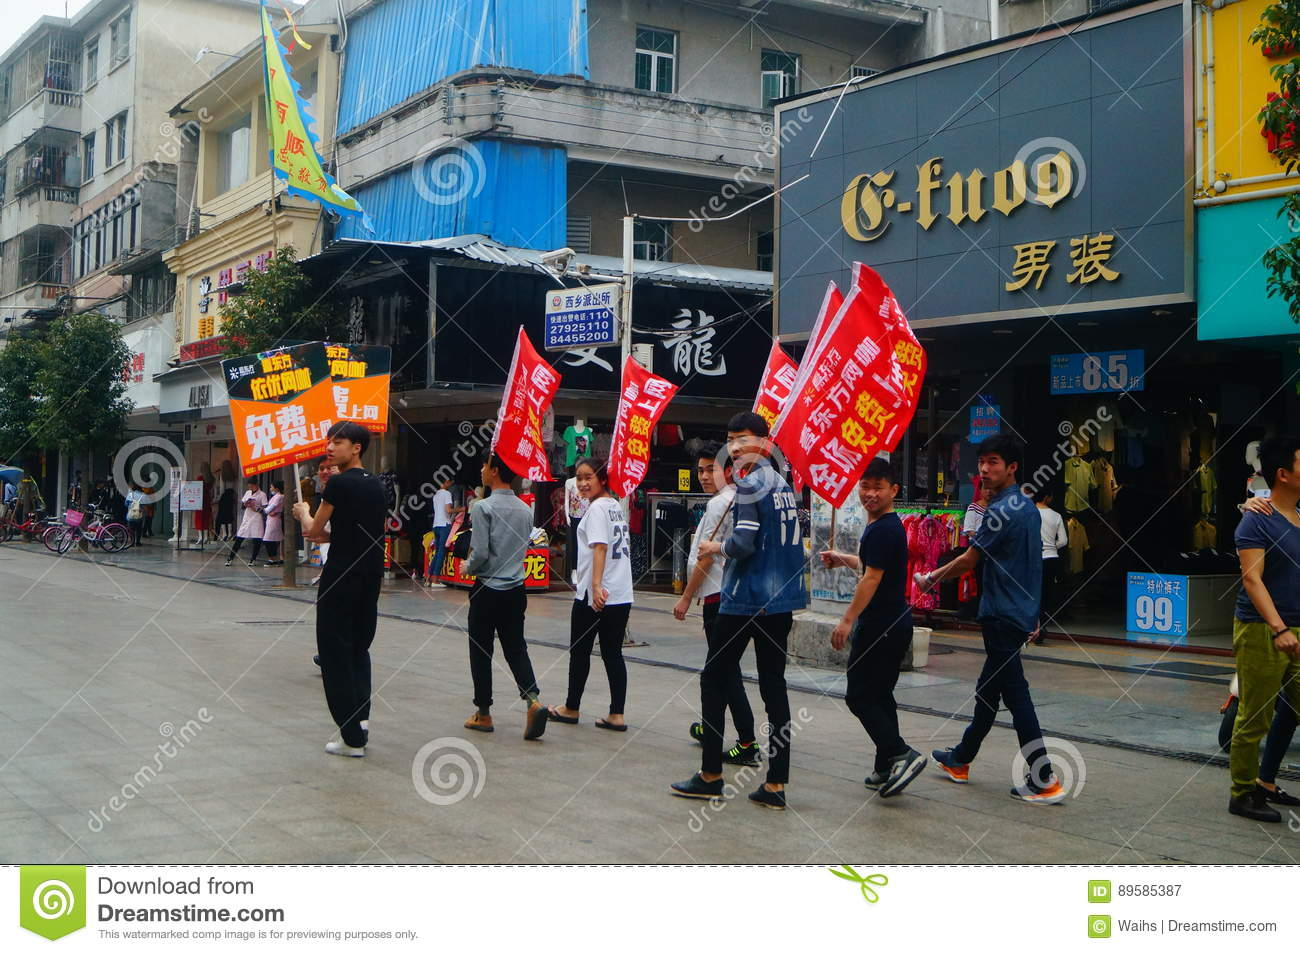 Shenzhen, China: young people to raise the banner of Internet advertising, publicity free Internet